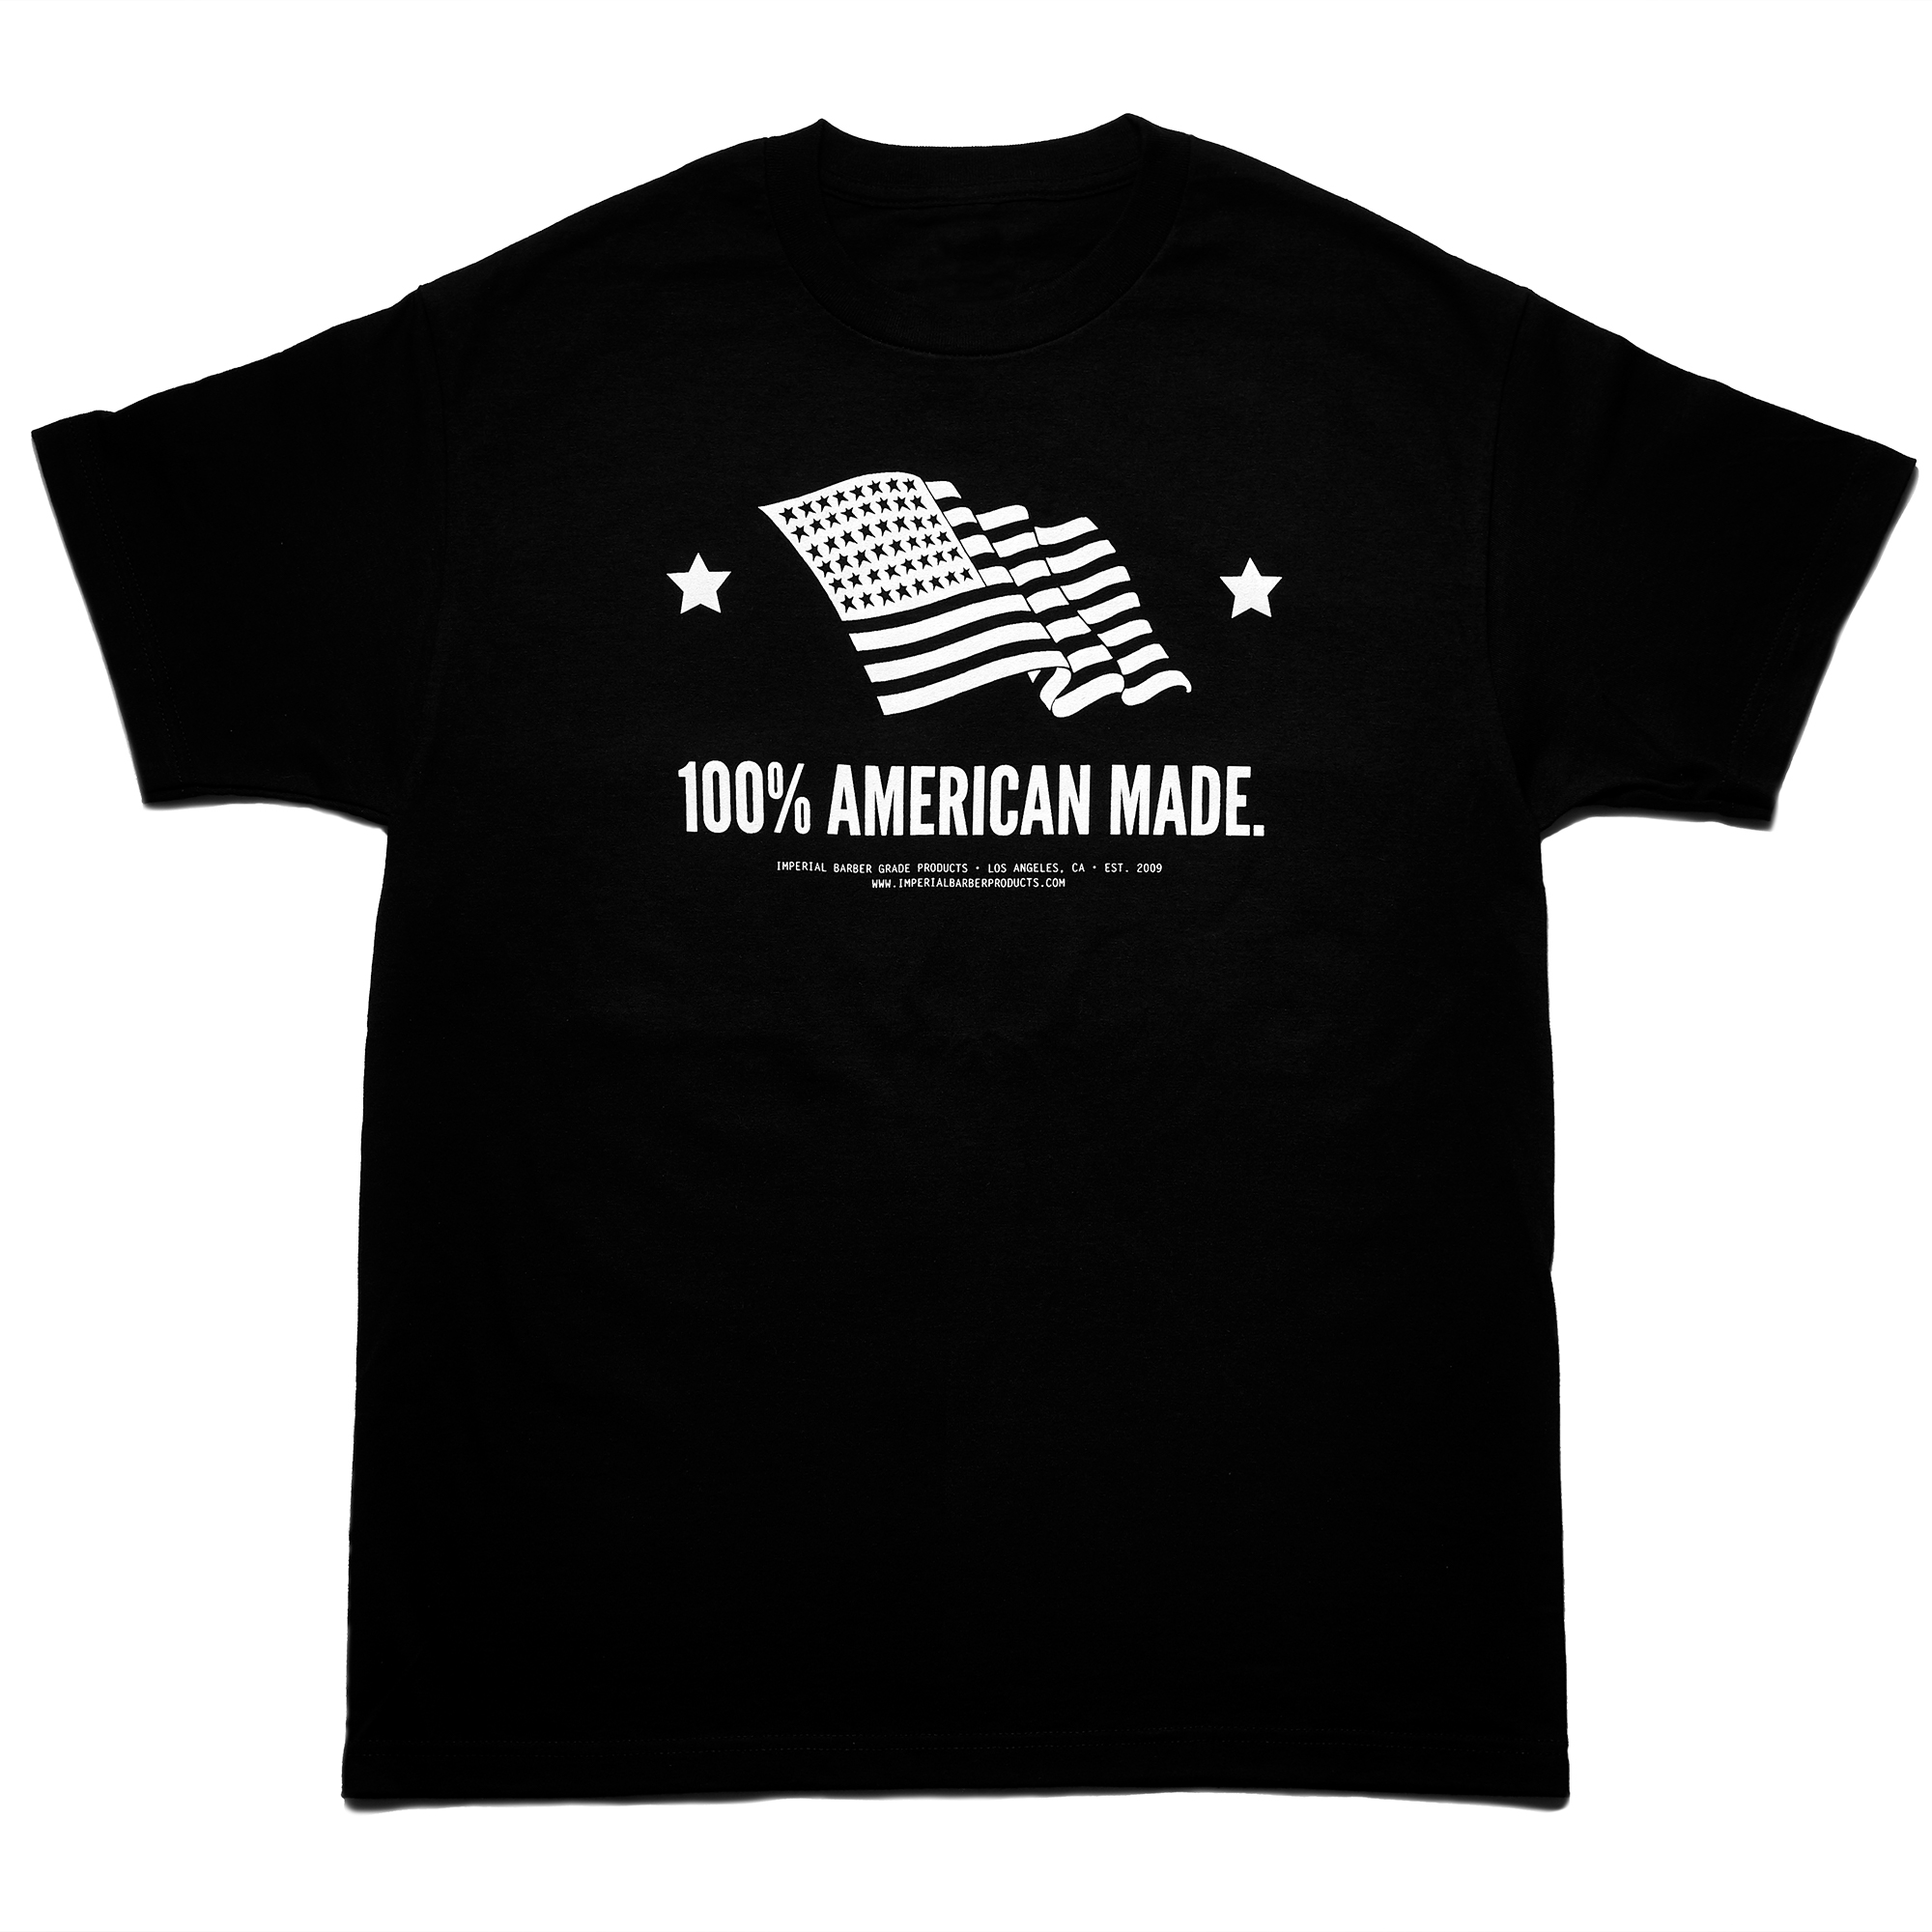 IMPERIAL 100% AMERICAN MADE T-SHIRT